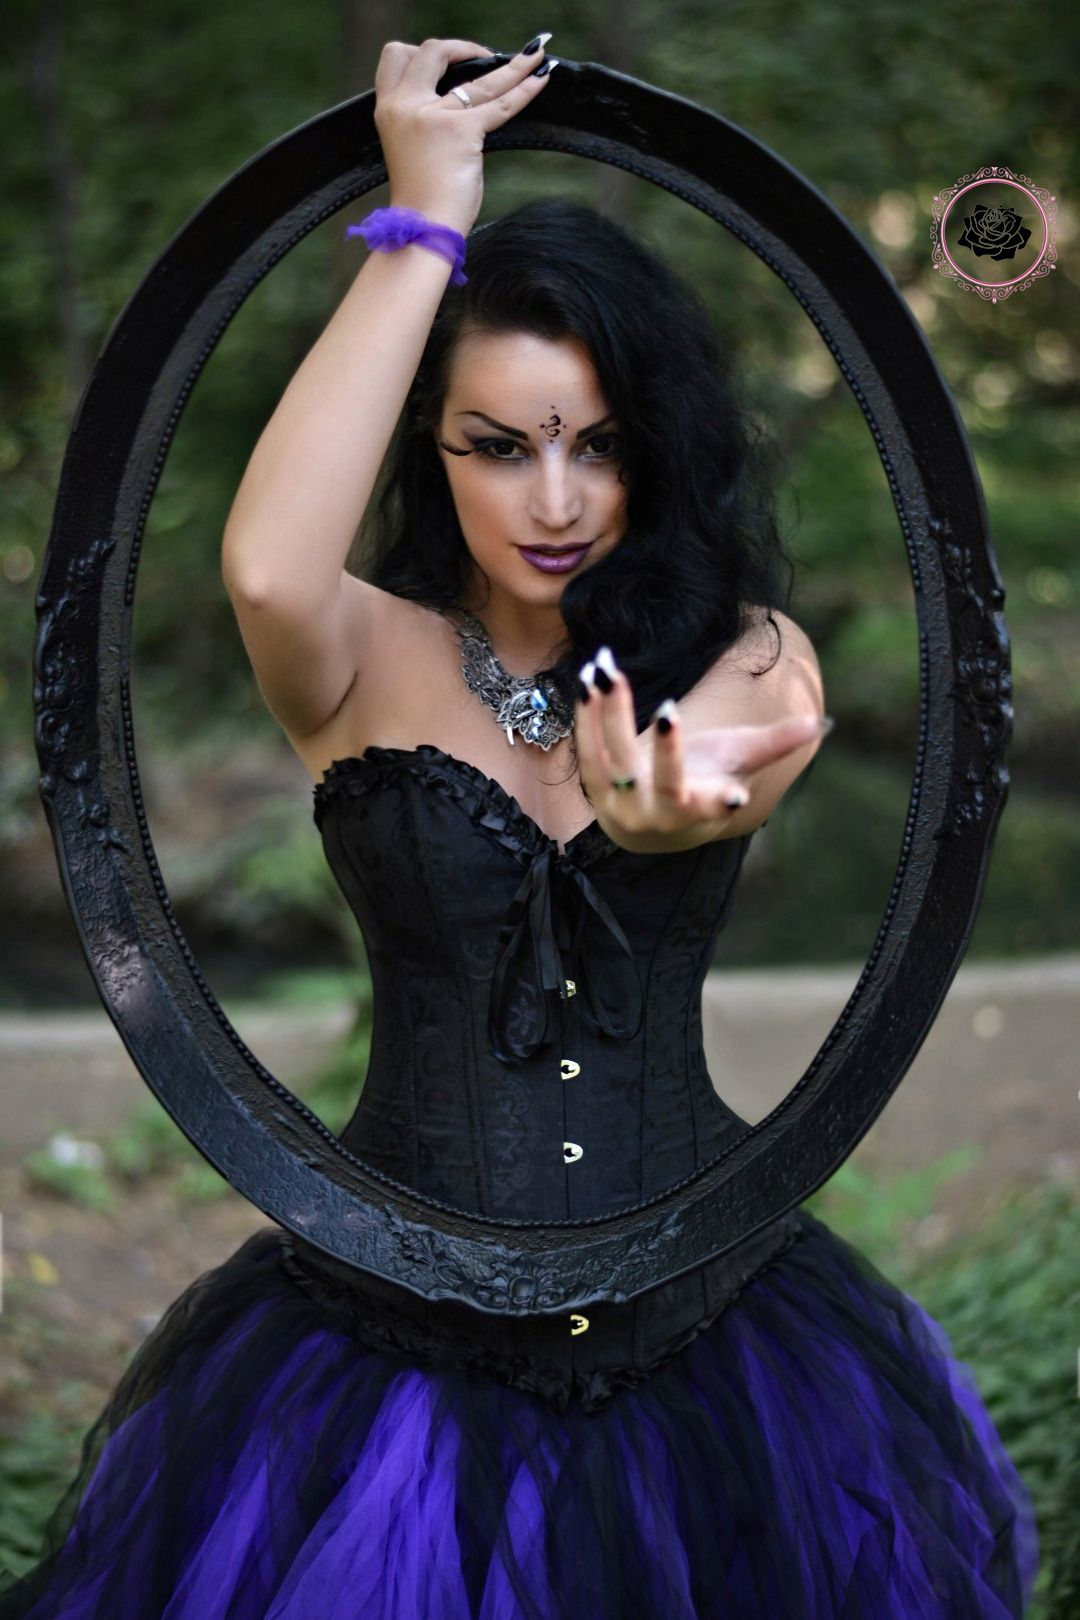 Model kali noir diamond photo vanic photography dress